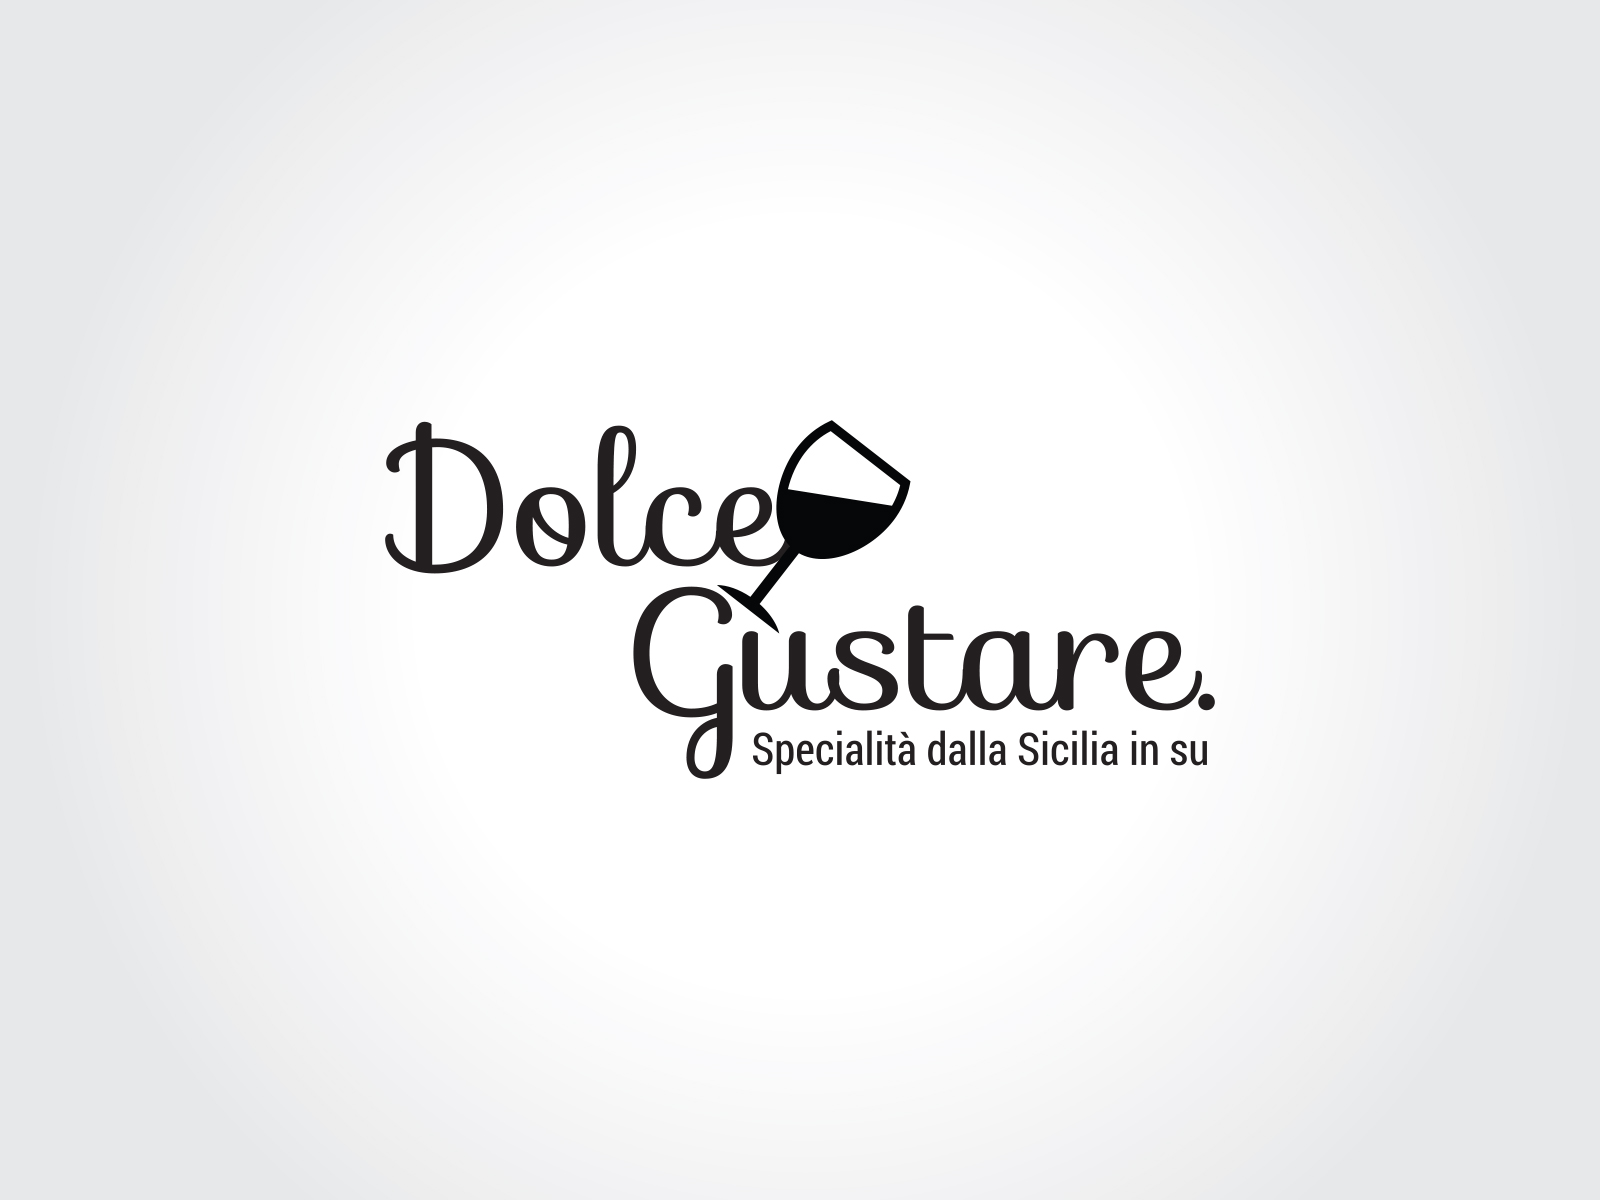 Dolce Gustare